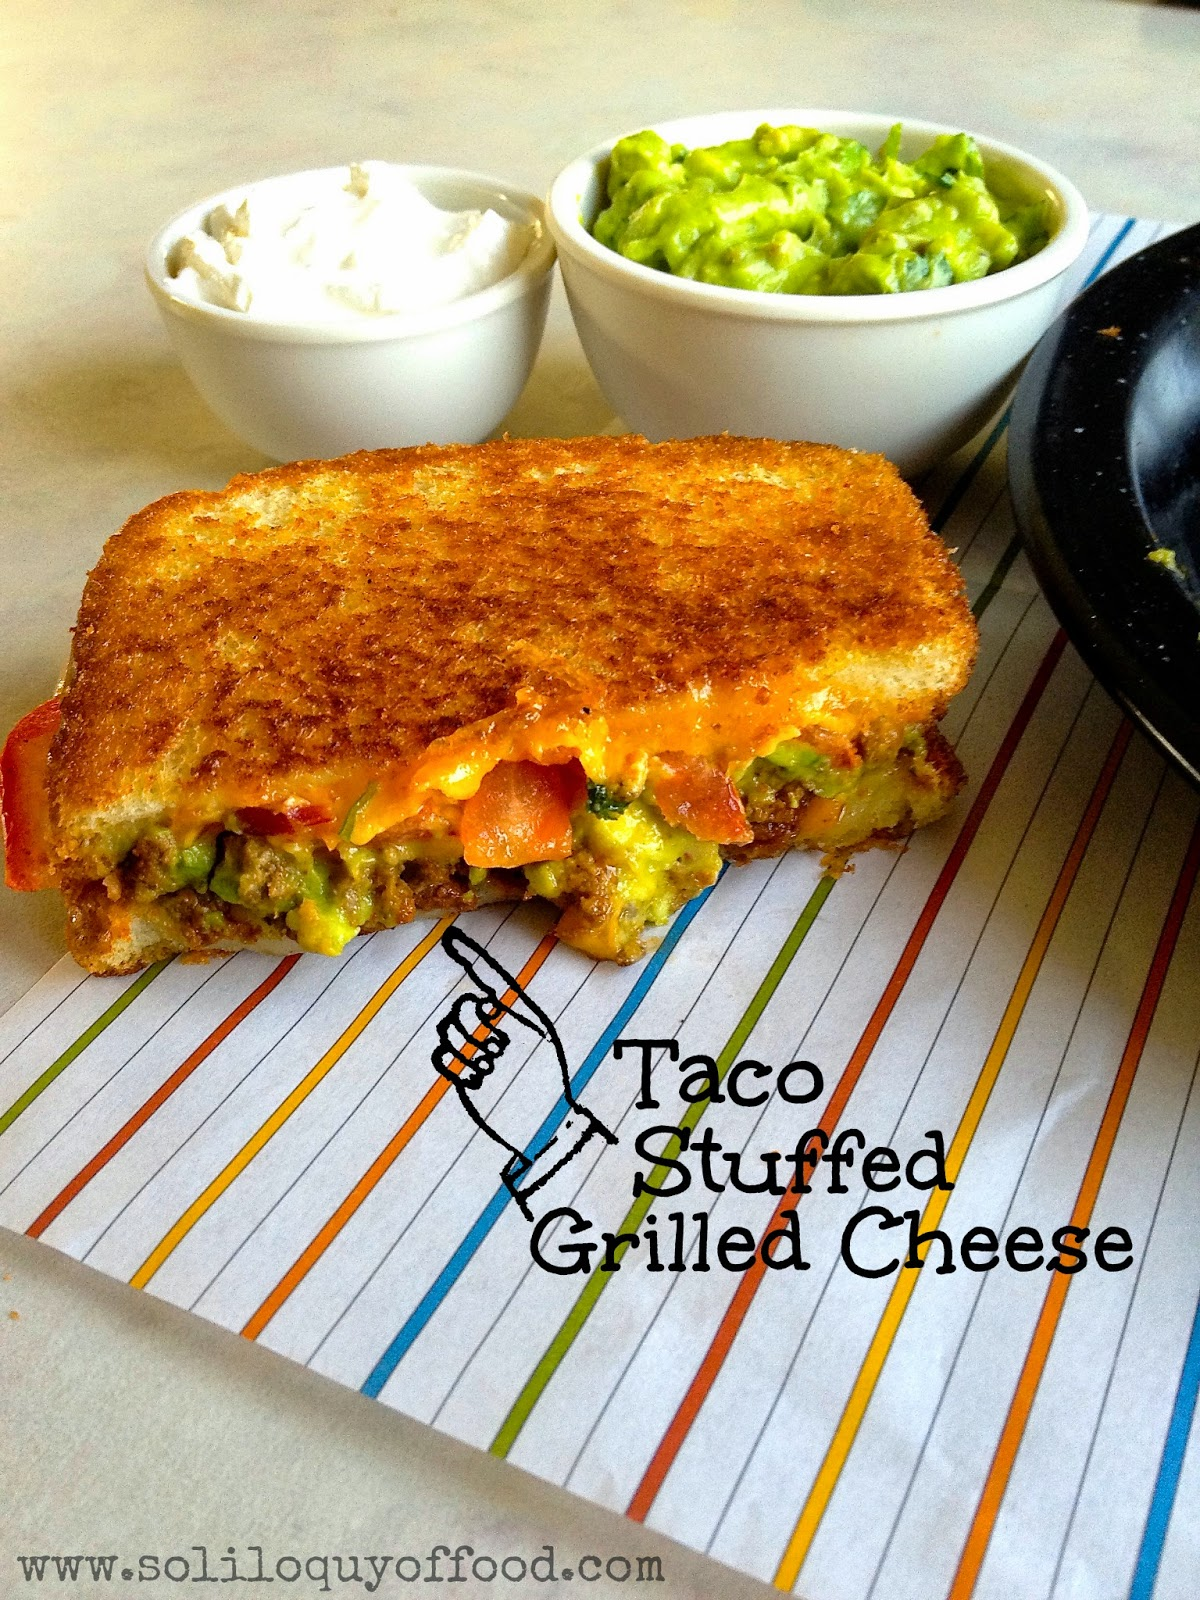 Taco Stuffed Grilled Cheese - You know you want one!  www.soliloquyoffood.com